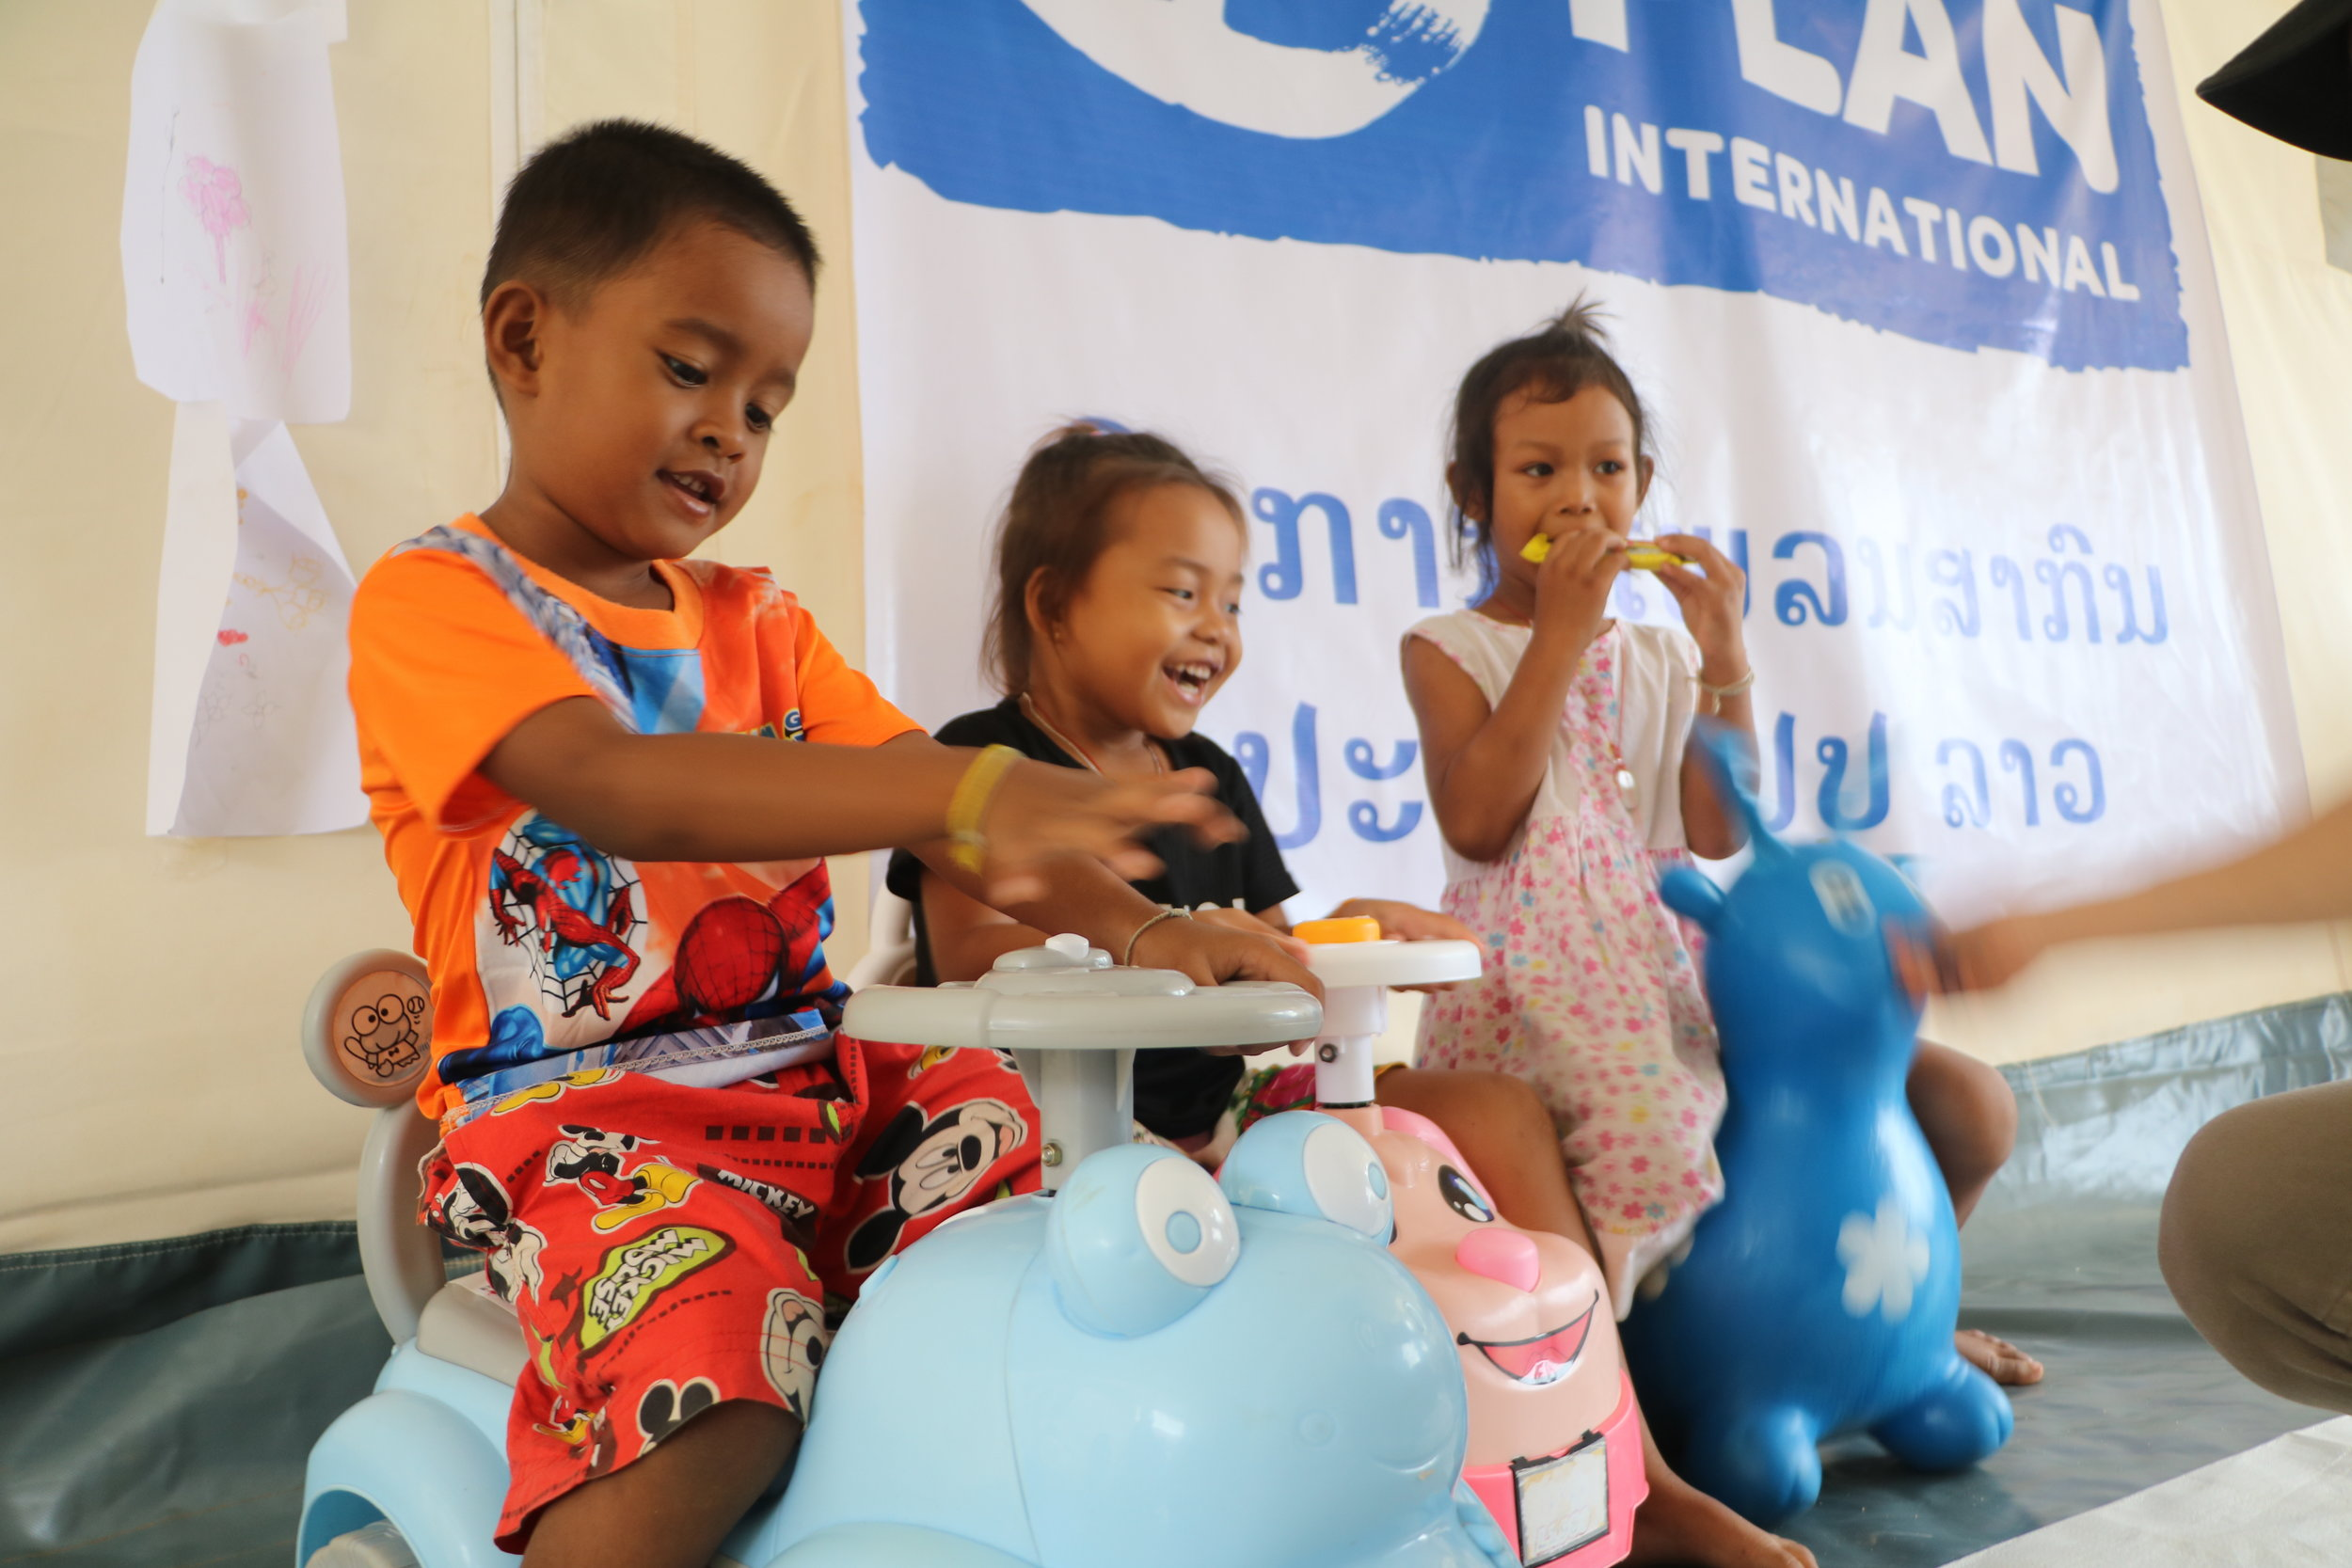 Above: Child-friendly spaces are set up in evacuation camps to help children with their recovery, and improve their learning skills through fun activities and games. Photo credit: Plan International.